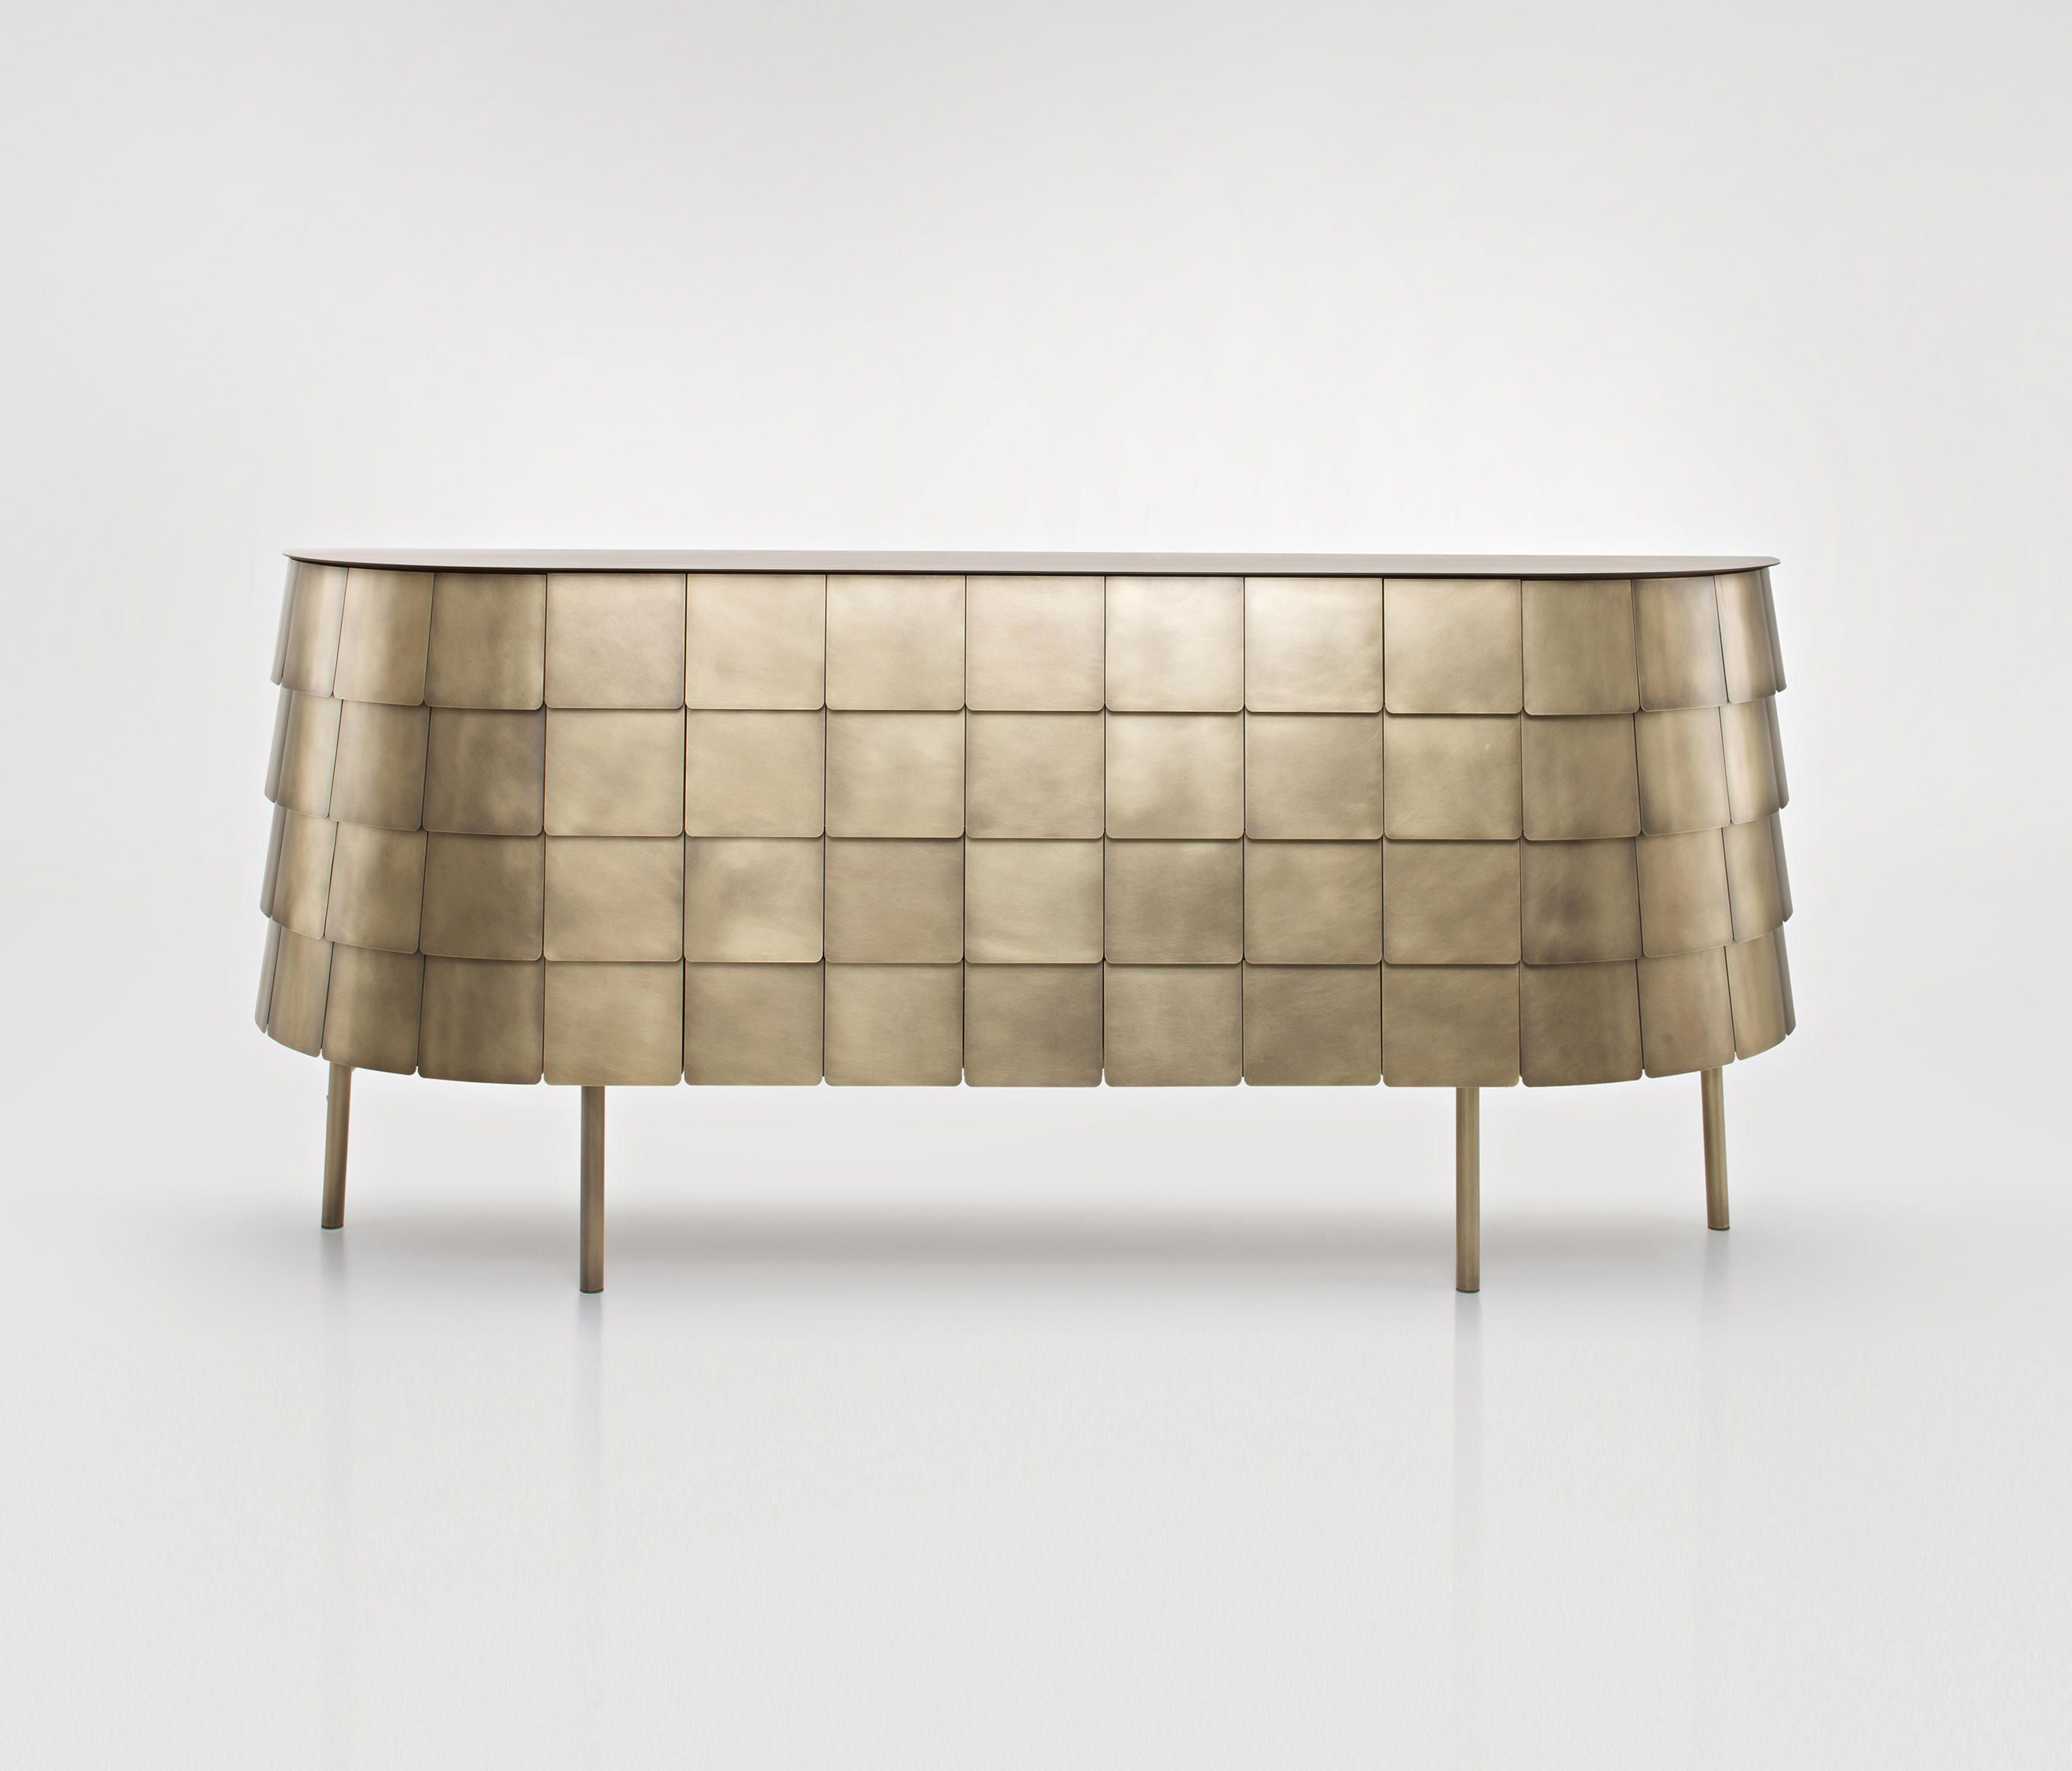 De Castelli: Metal At Its Finest | Side Board | Furniture Within Castelli Sideboards (View 6 of 20)